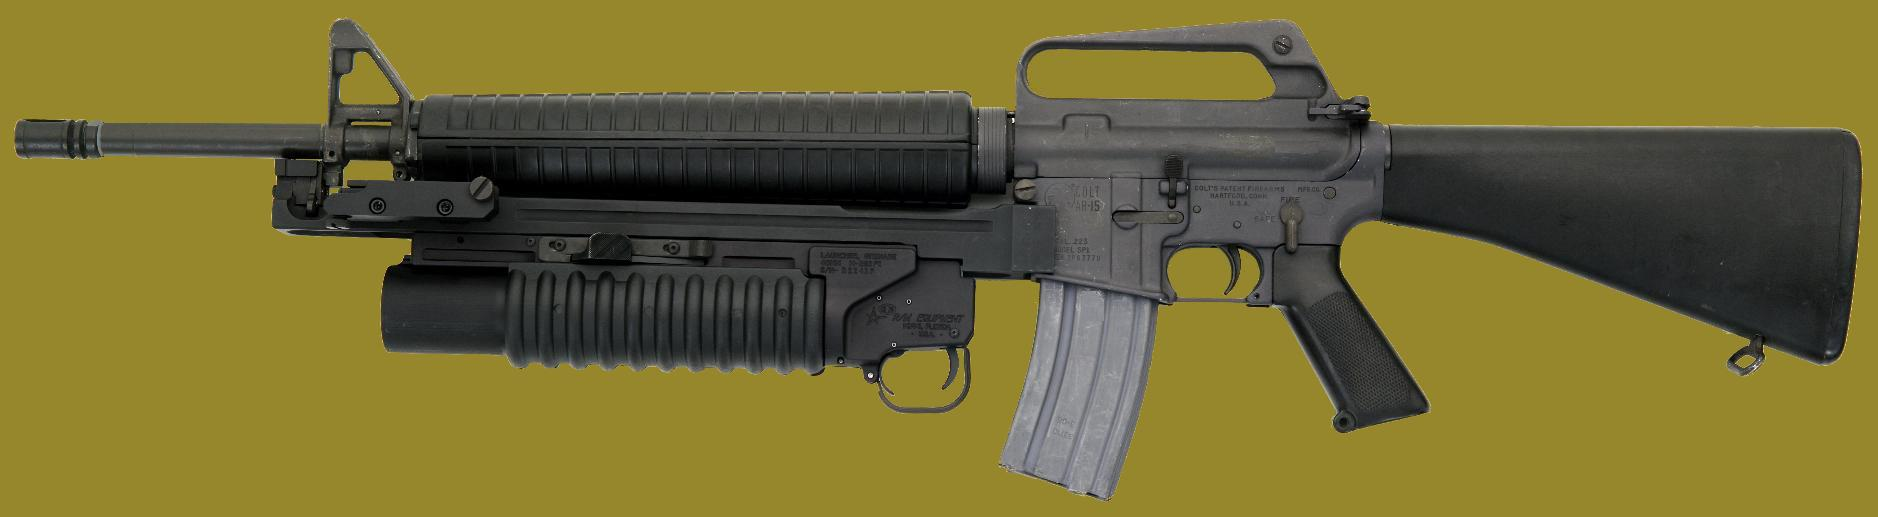 The M203 40mm grenade launcher on the M16 rifle - one version of the M203PI EGLM manufactured by RM Equipment, Inc.